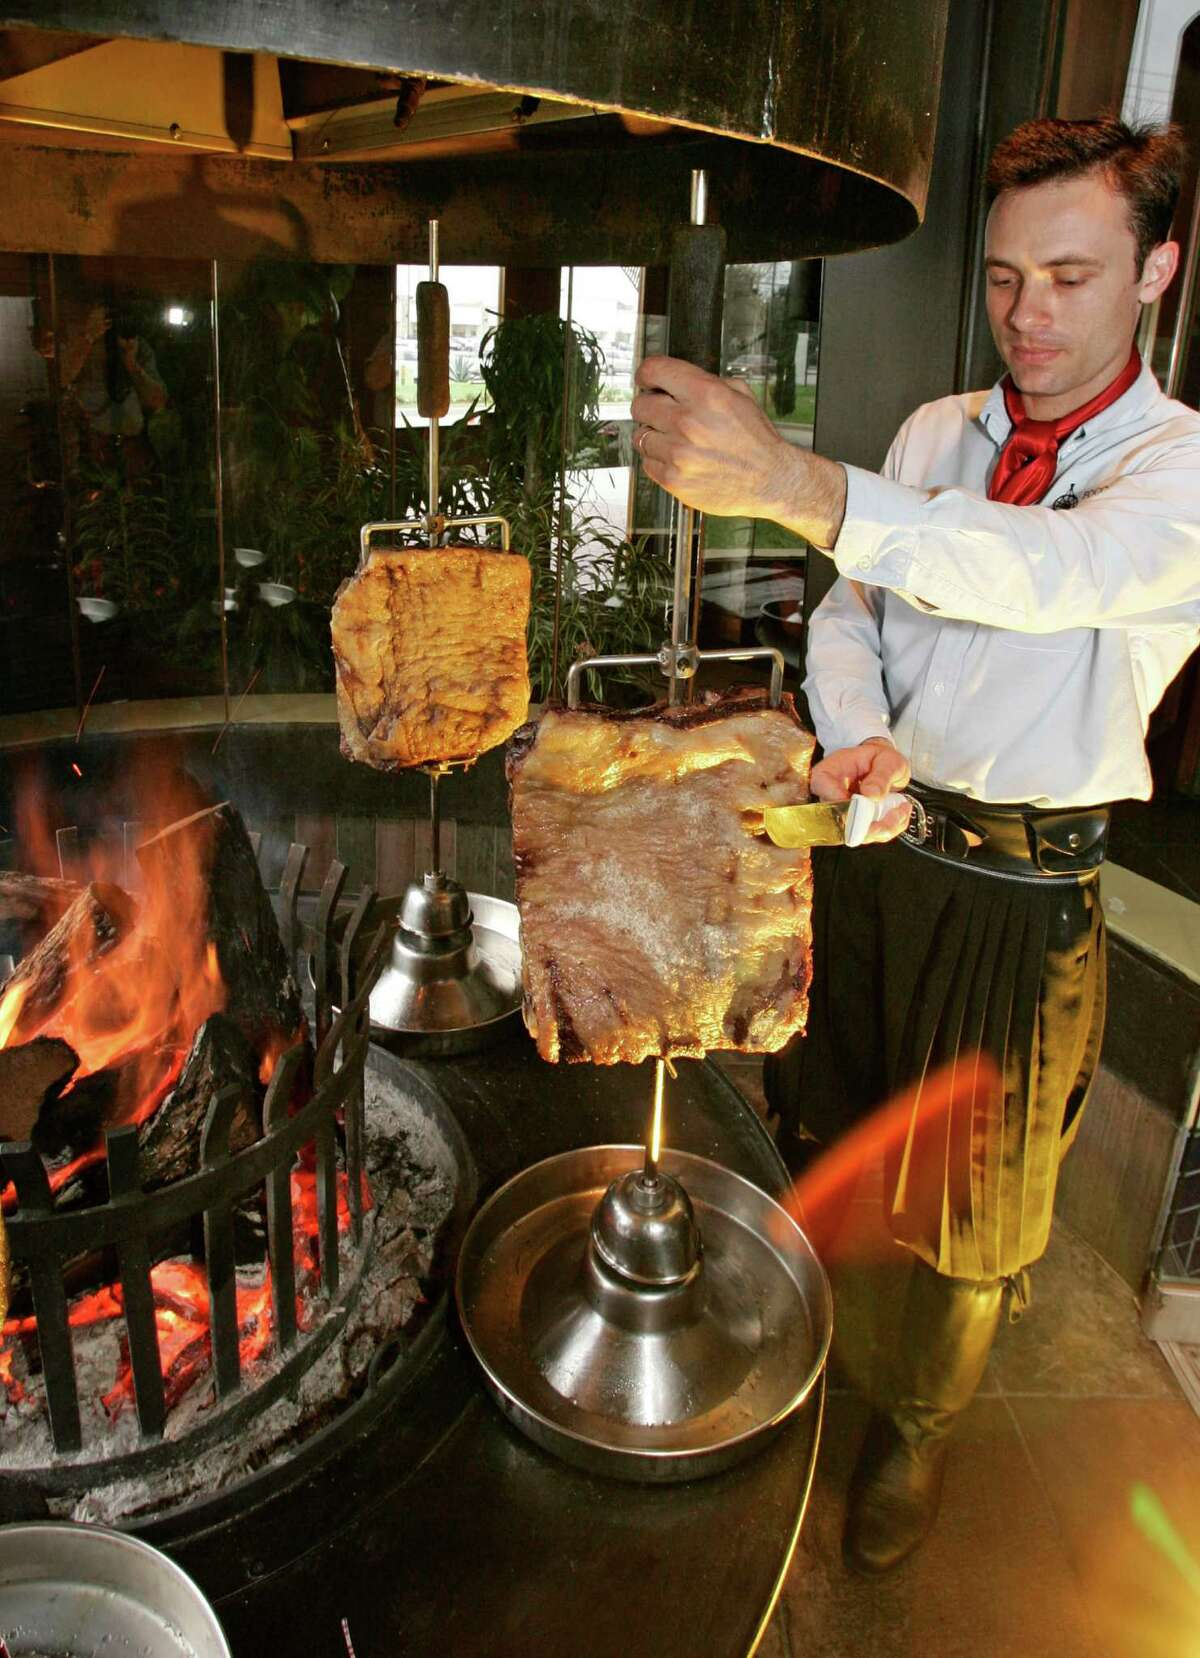 At Fogo de Chao, gauchos serve a selection of flame-roasted beef ribs and other meats. One diner said she observed one of four girls running around the restaurant nearly collide with a server.